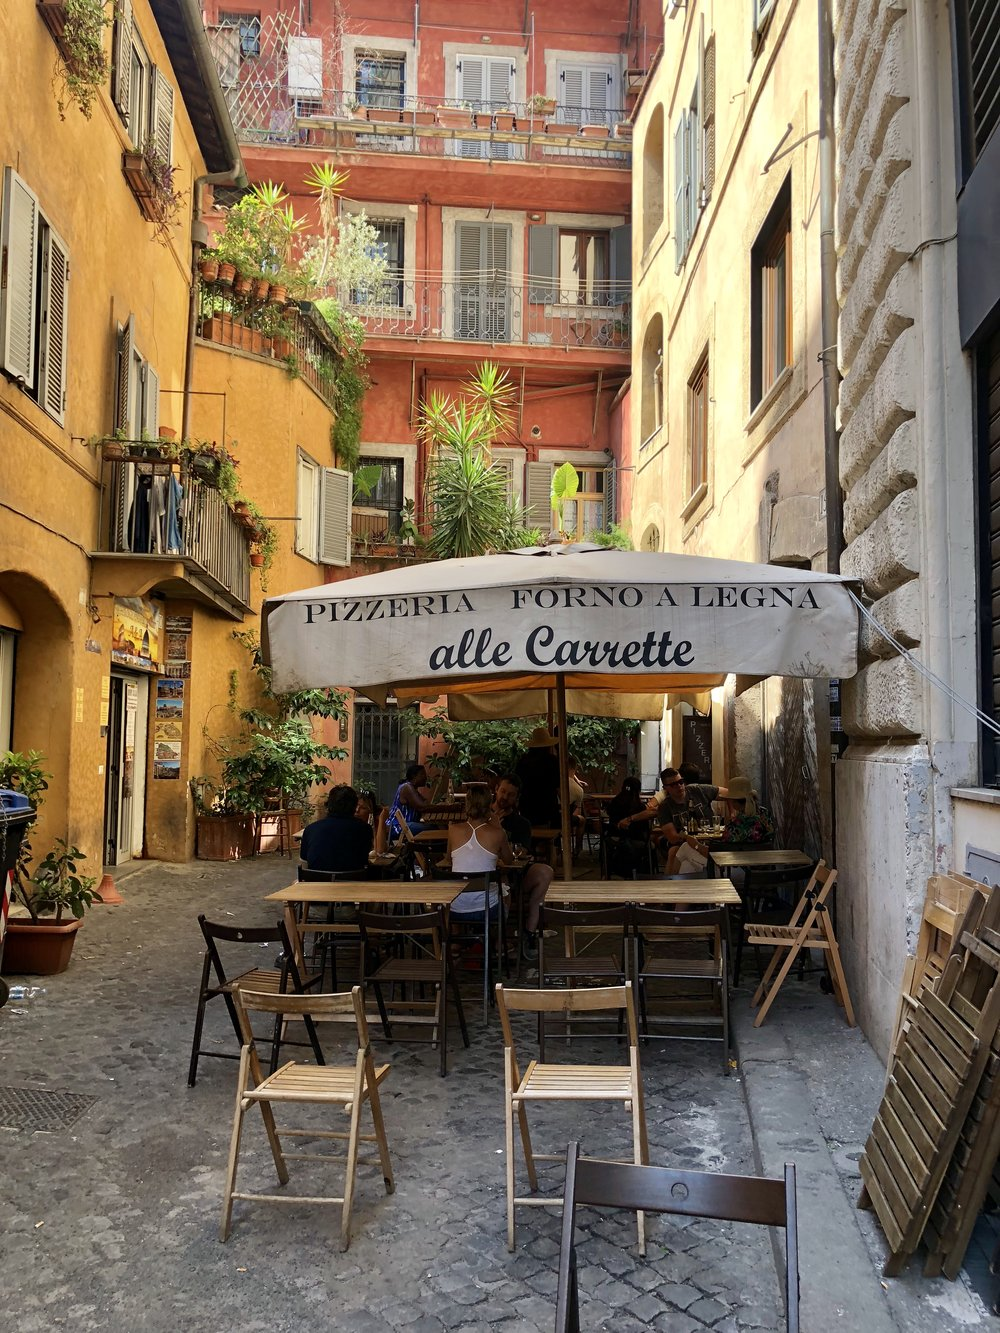 One of the many outdoor cafes that we frequented.